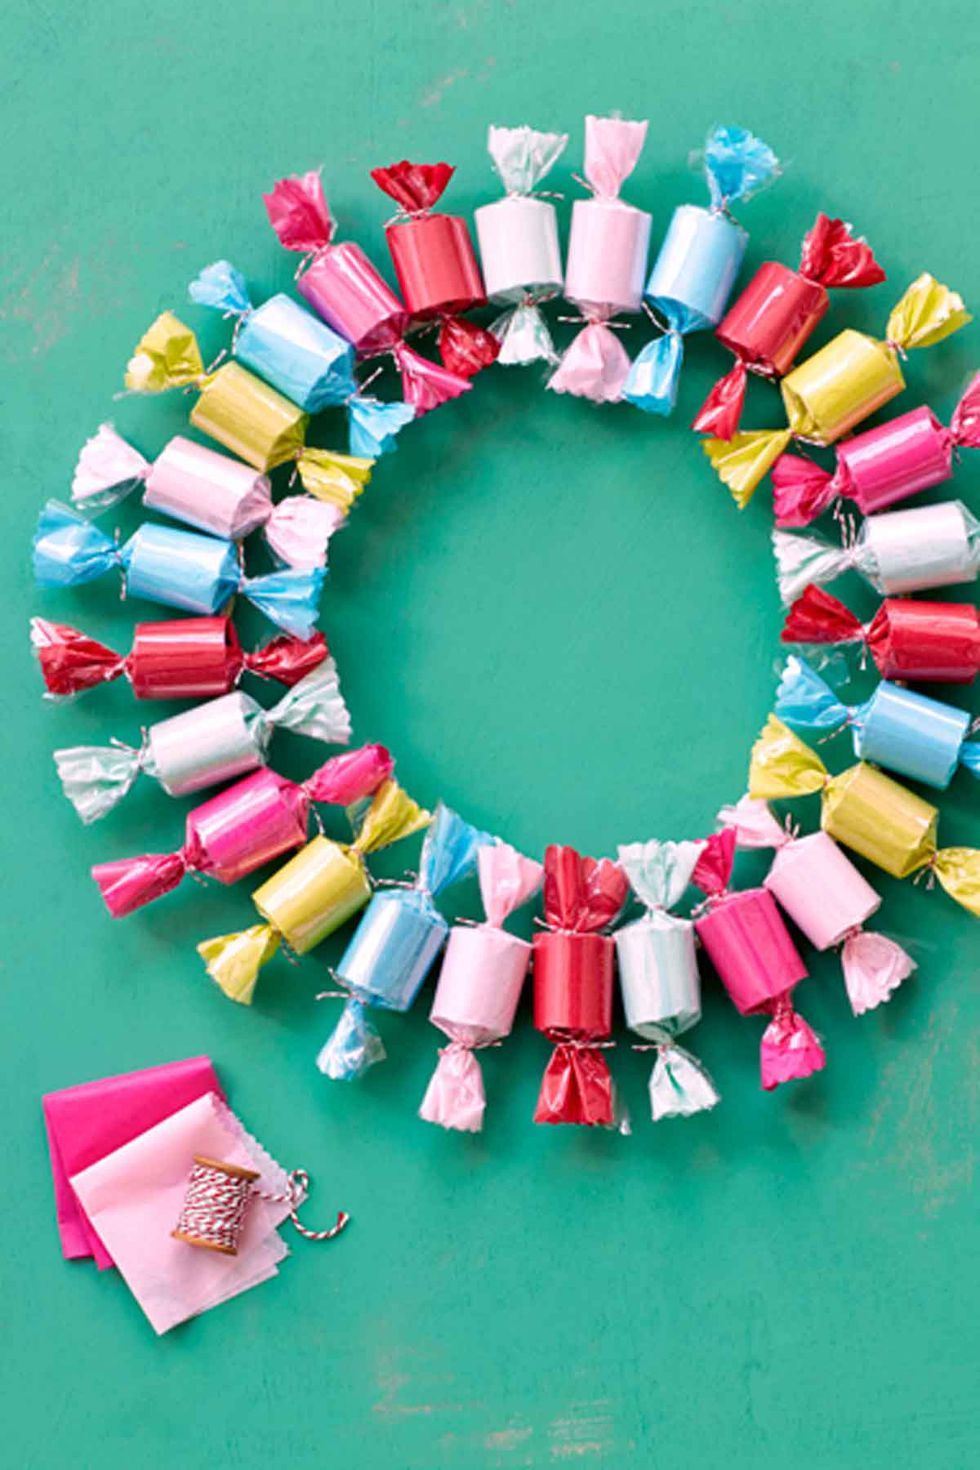 55 DIY Christmas Wreaths - How to Make a Holiday Wreath Craft